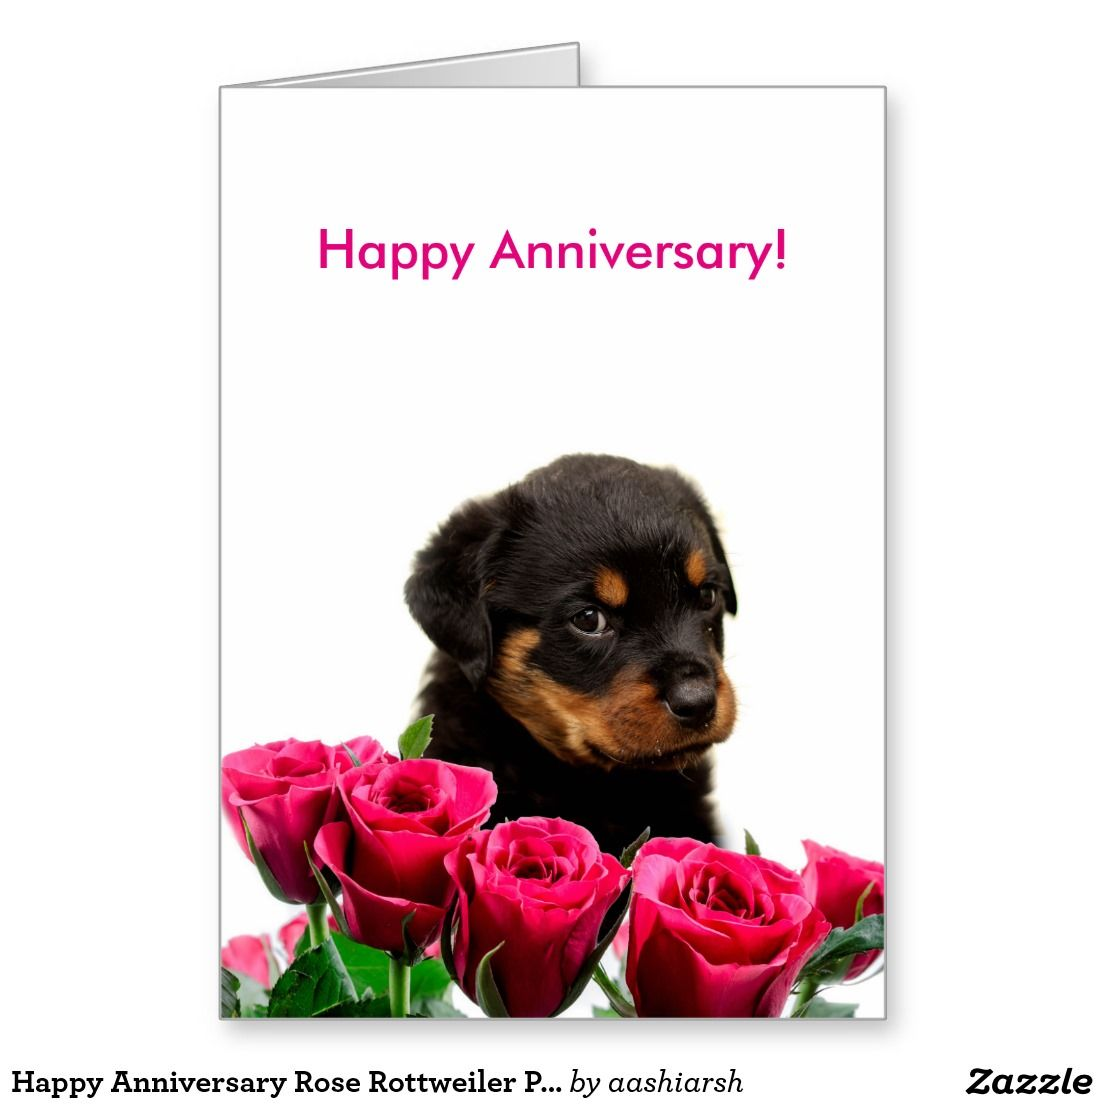 Happy Anniversary Rose Rottweiler Puppy Card | Cards | Pinterest ...